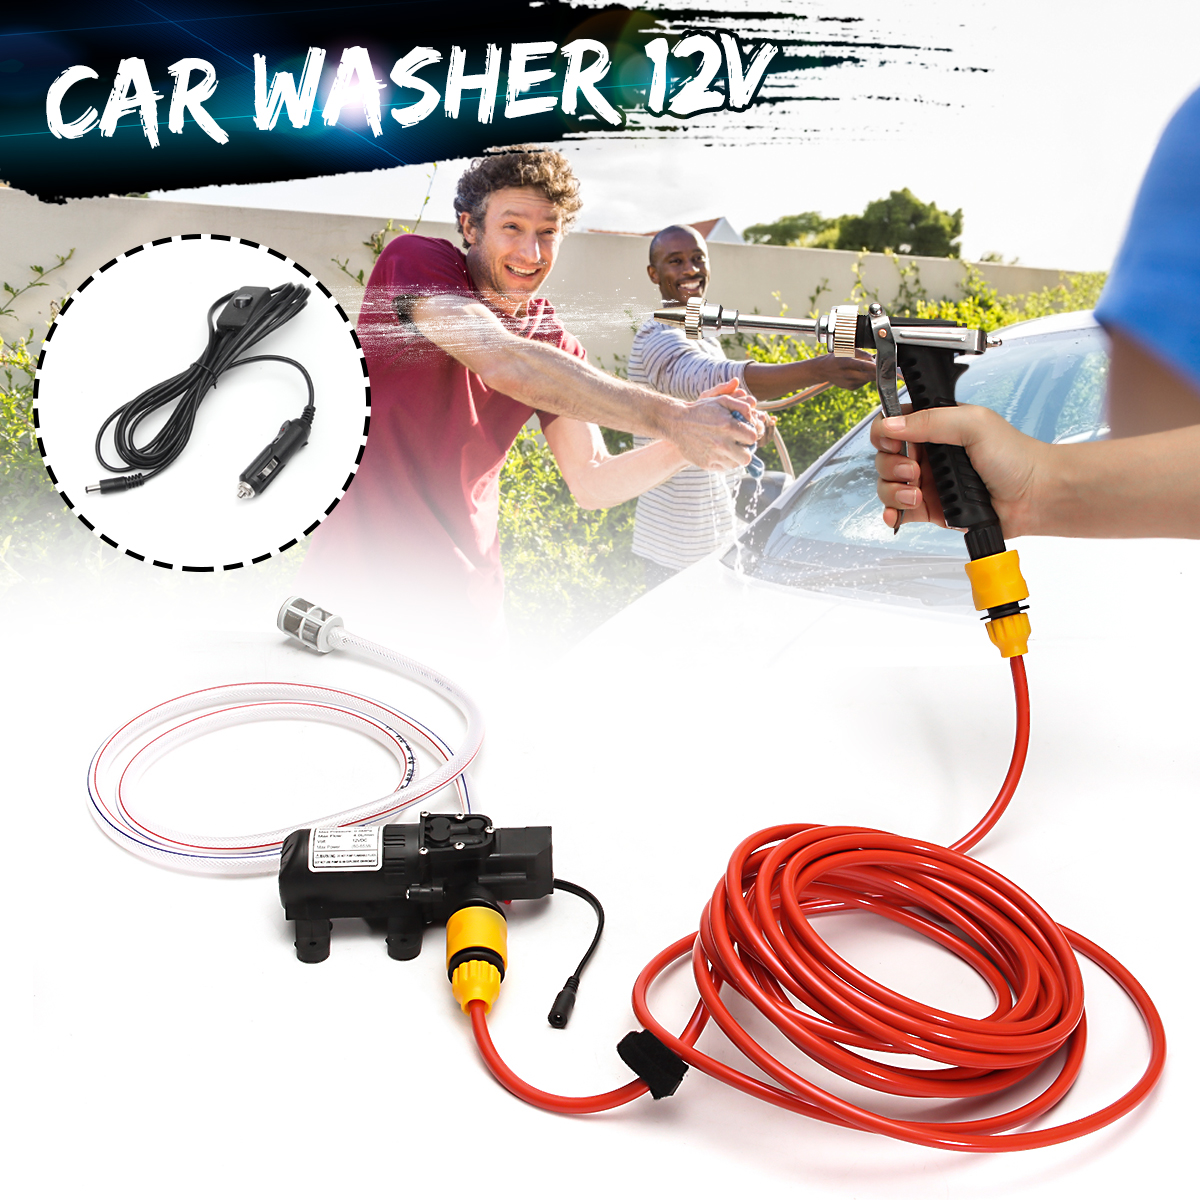 65W Portable High Pressure Car Washer 12V Electric Washing Maintenance Cleaner Water Pump Sprayer Kit Tool Auto Car Wash Machine